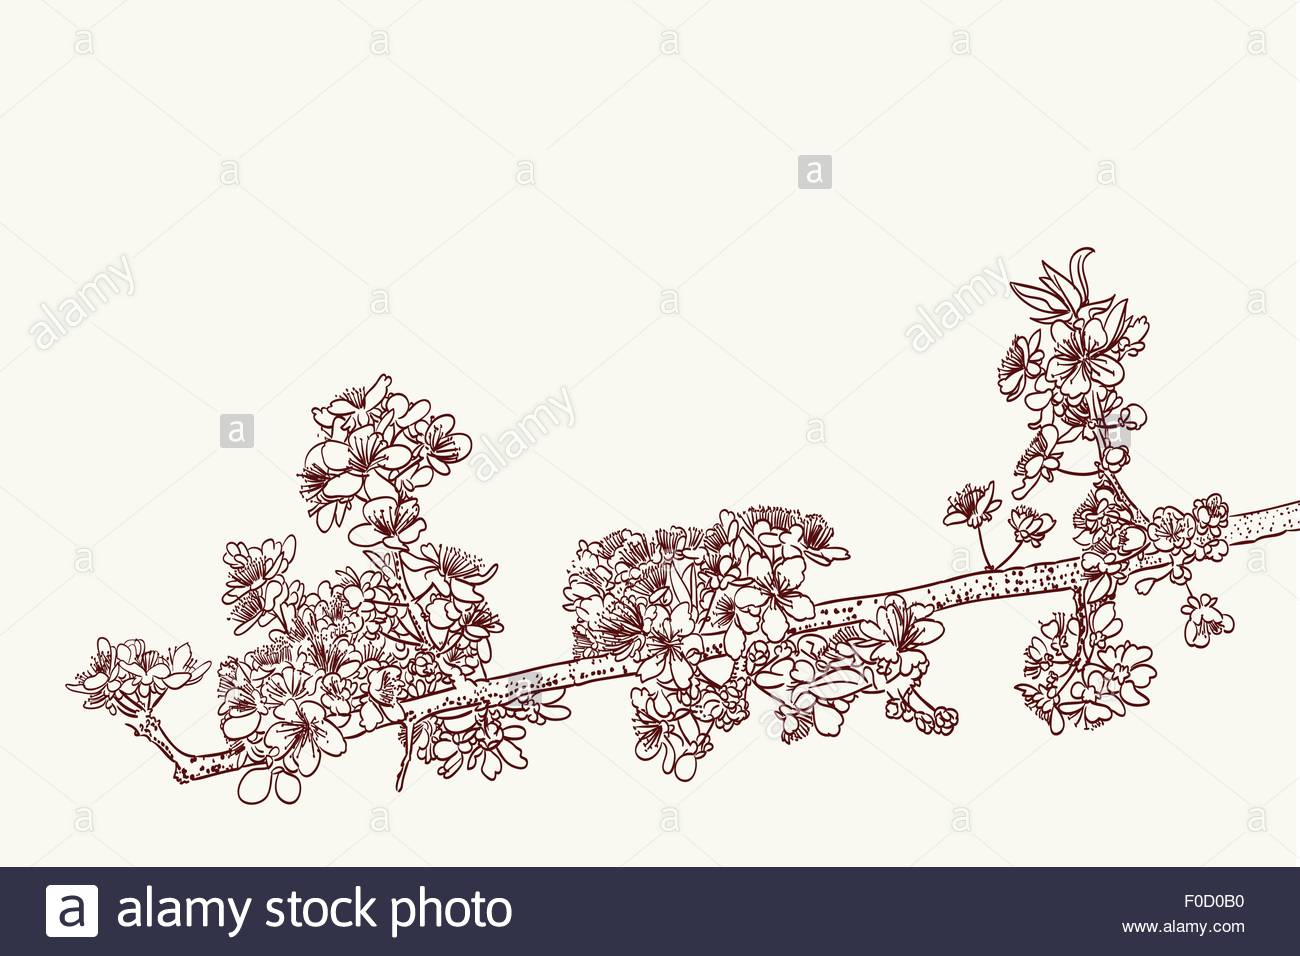 1300x956 Stylized Sakura Flowers Drawing In Two Colors Stock Vector Art